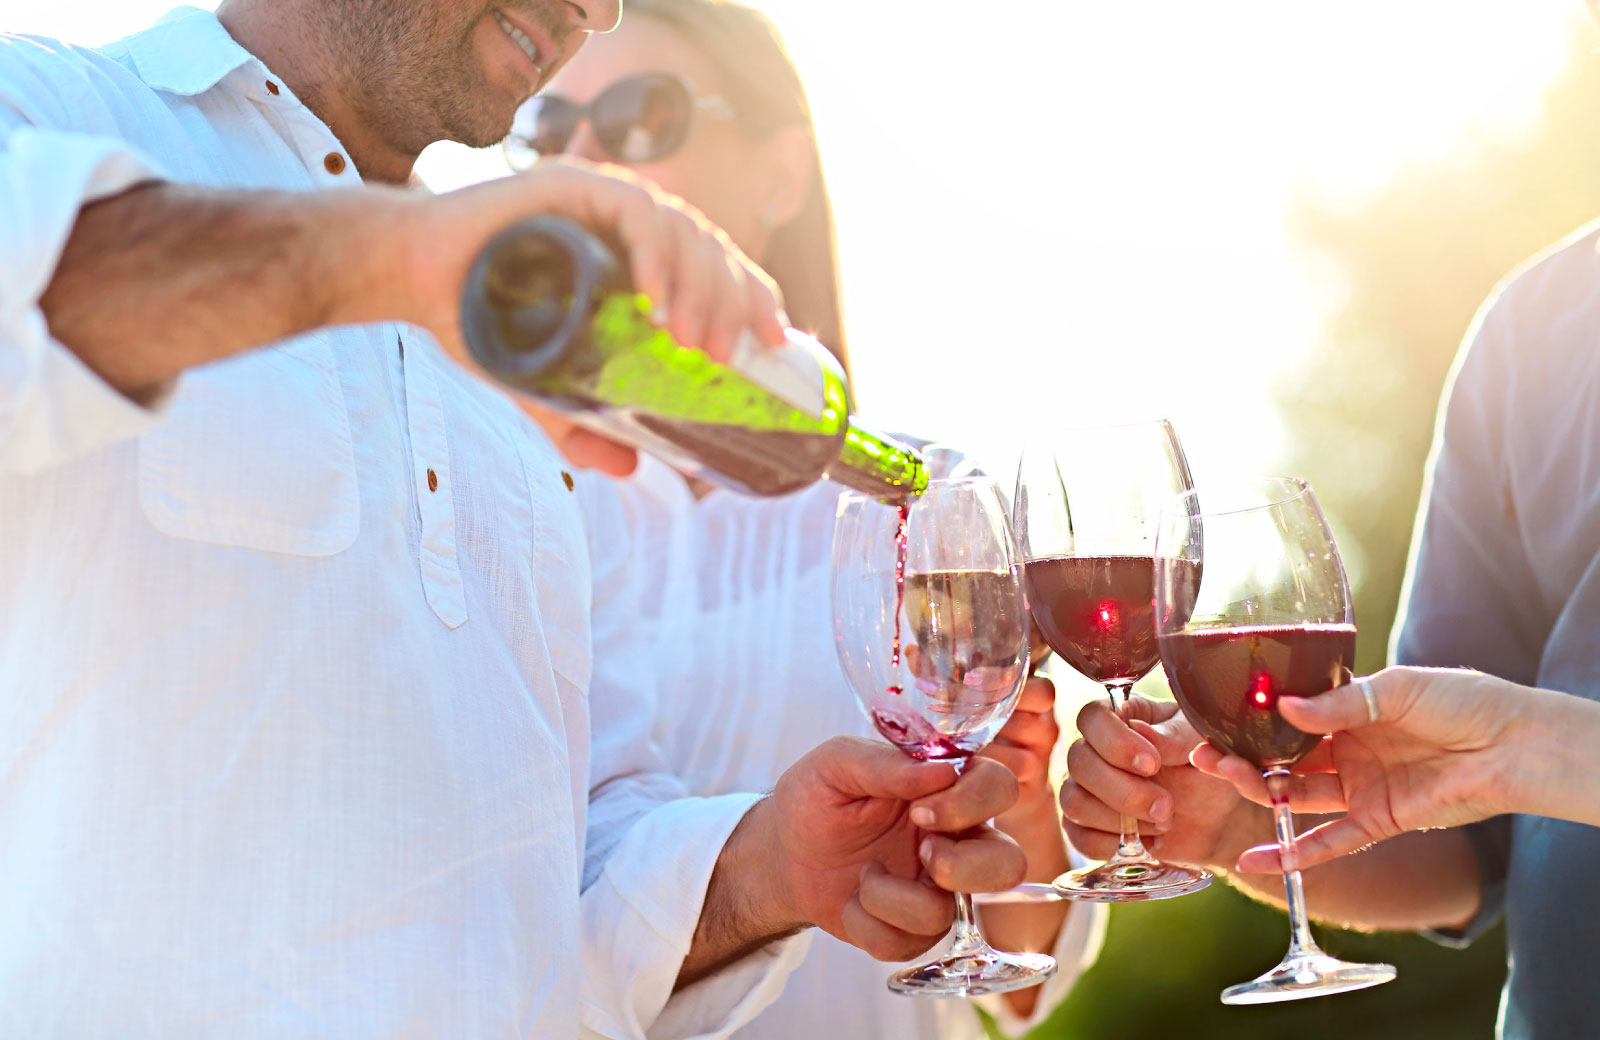 man pouring red wine in wine glasses